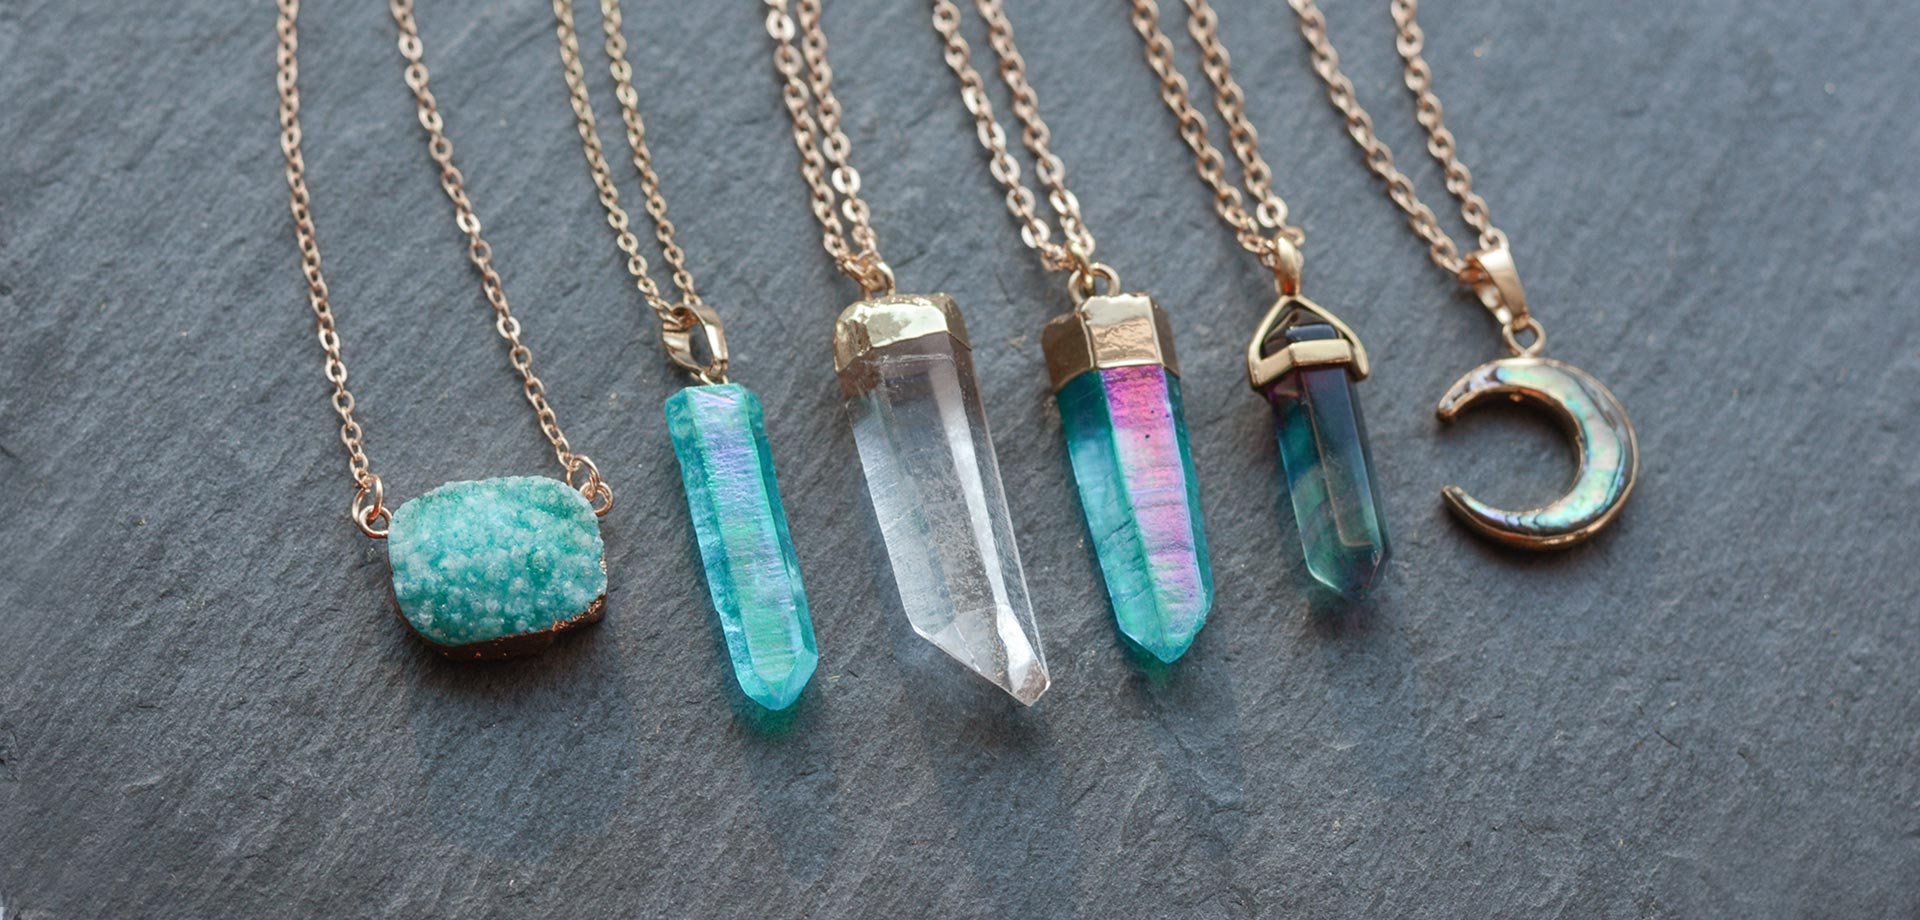 Blue and turquoise angel quartz necklaces. Shop this season's crystal quartz necklaces. Choose your favourite pieces and wear them on different chain lengths.